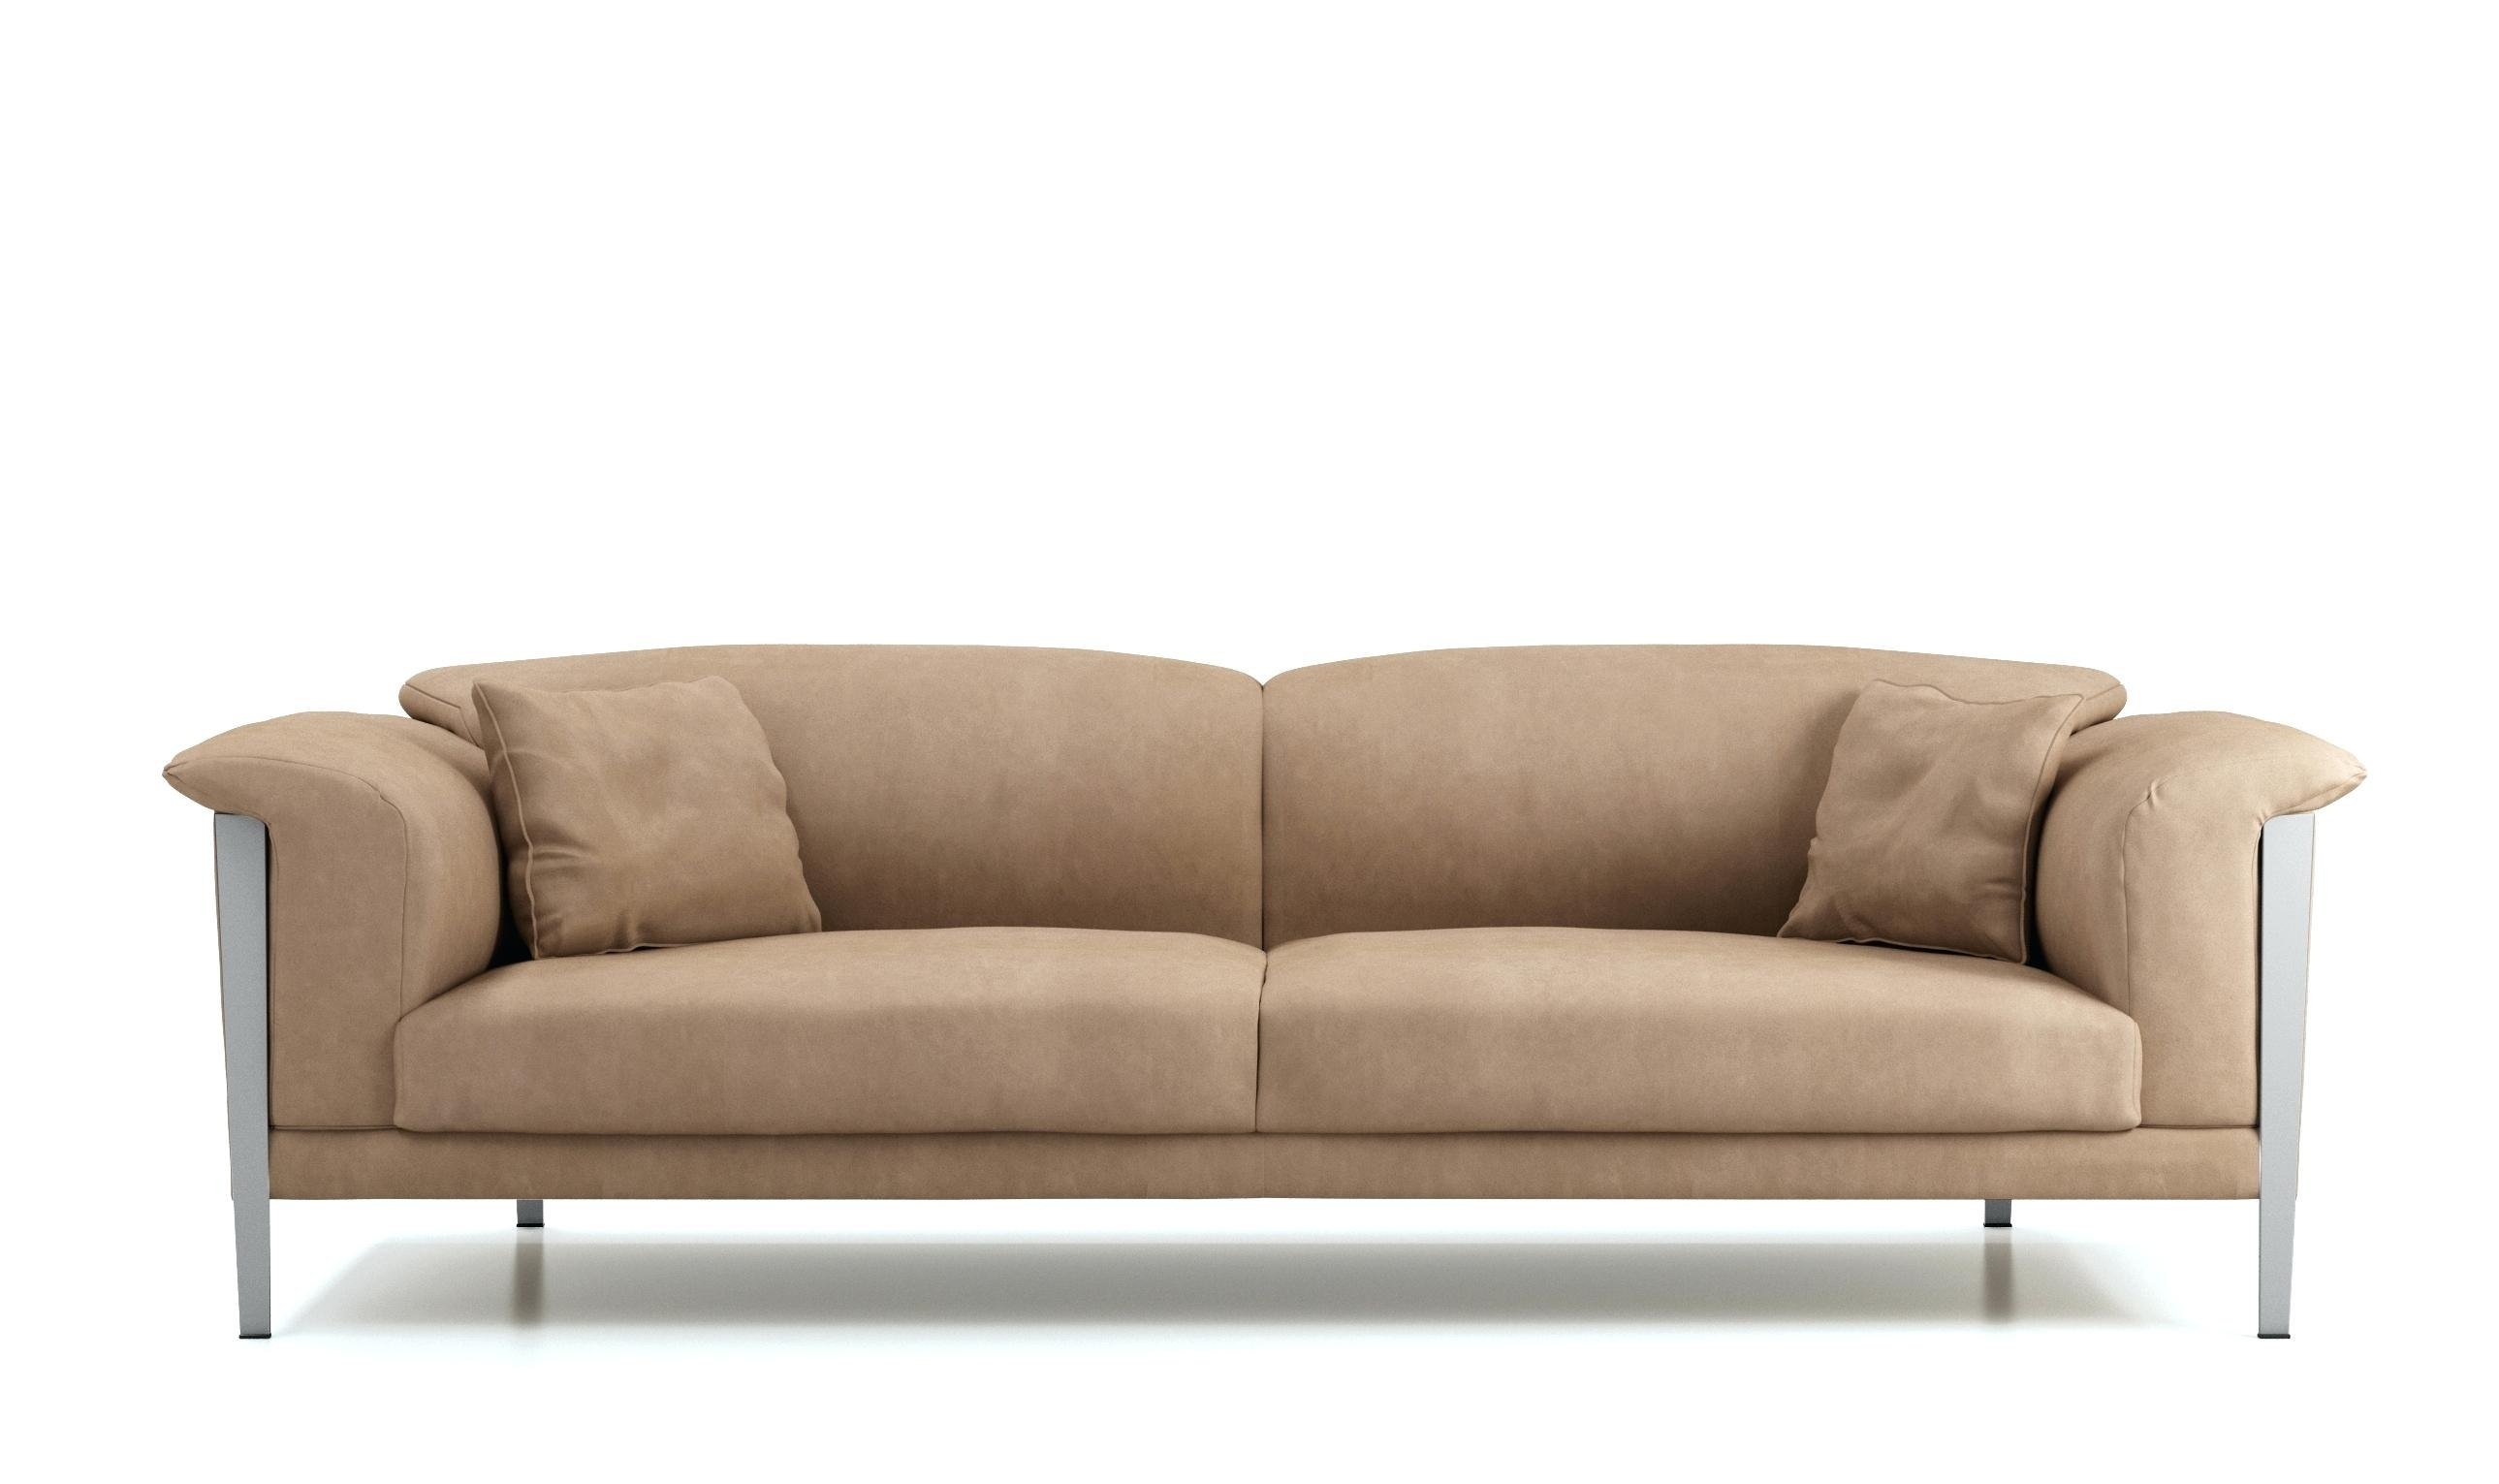 Soft Couches Leather Sofa Cleaning Childrens Sofas – Thedwelling Throughout Soft Sofas (View 8 of 10)